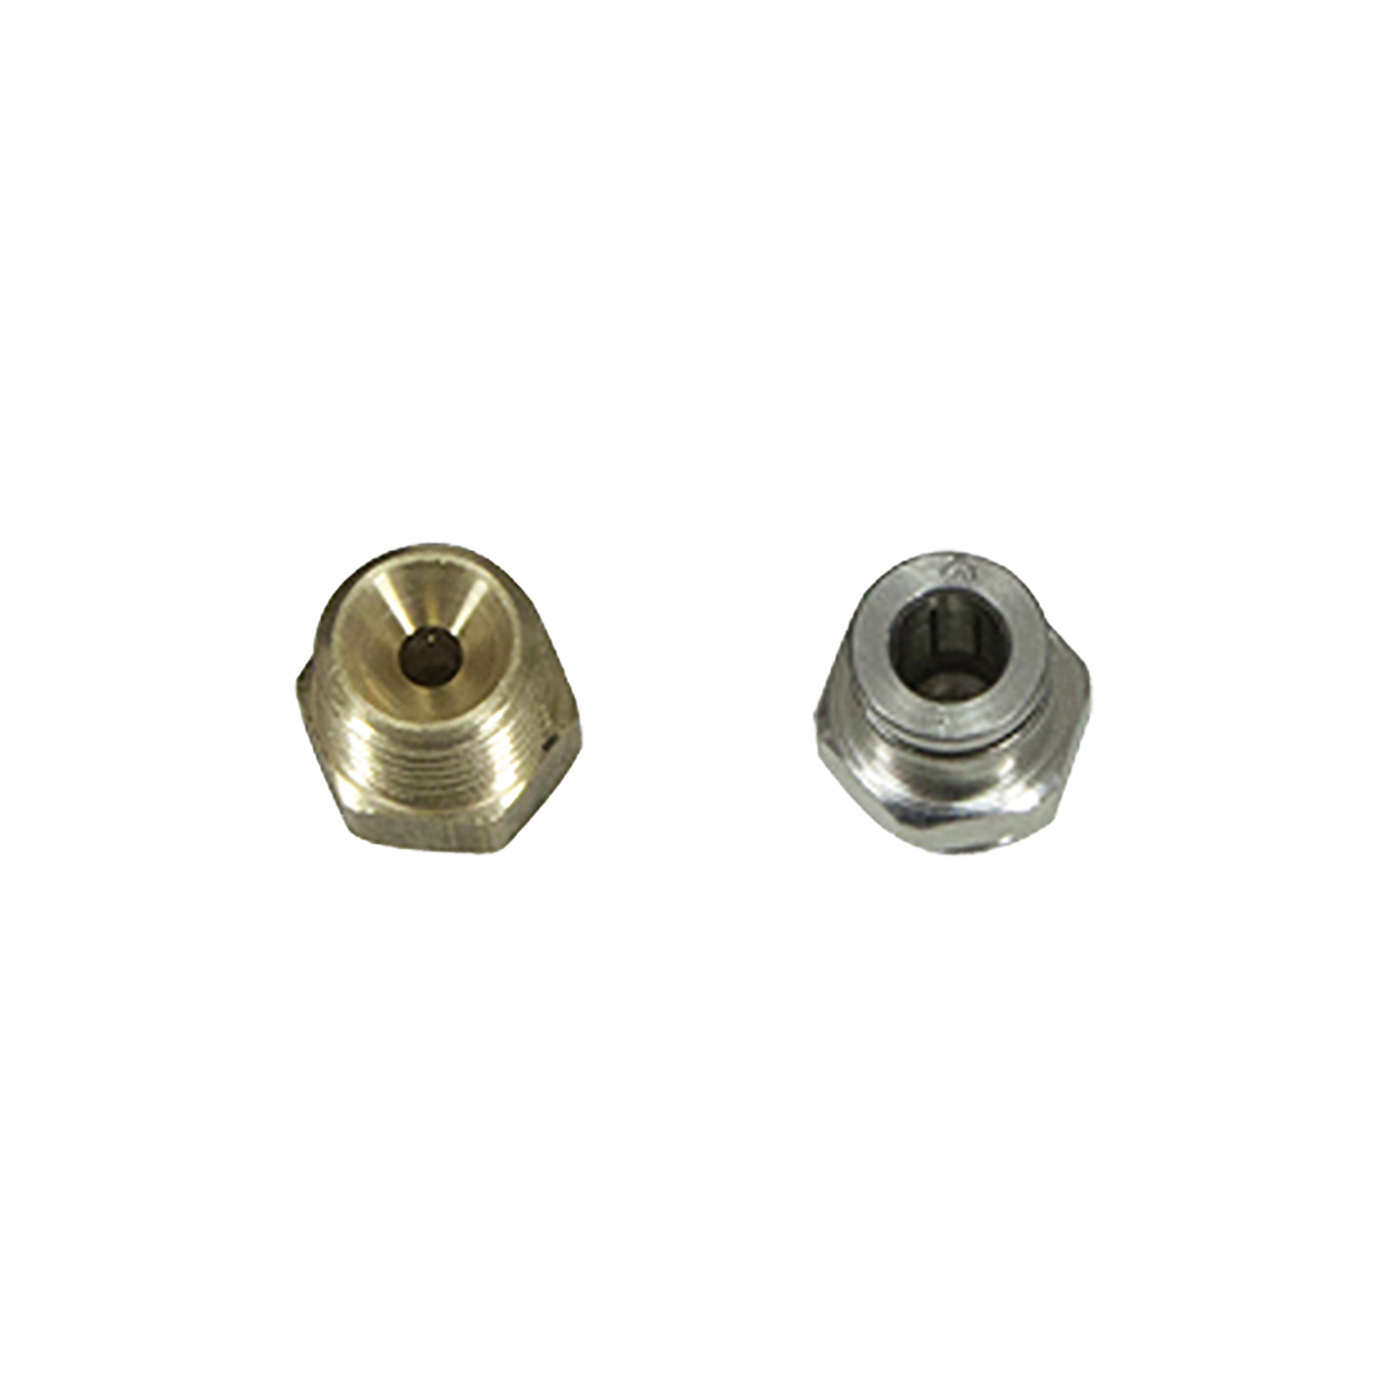 YZLABF-KIT - Yukon Zip Locker Bulkhead fitting kit